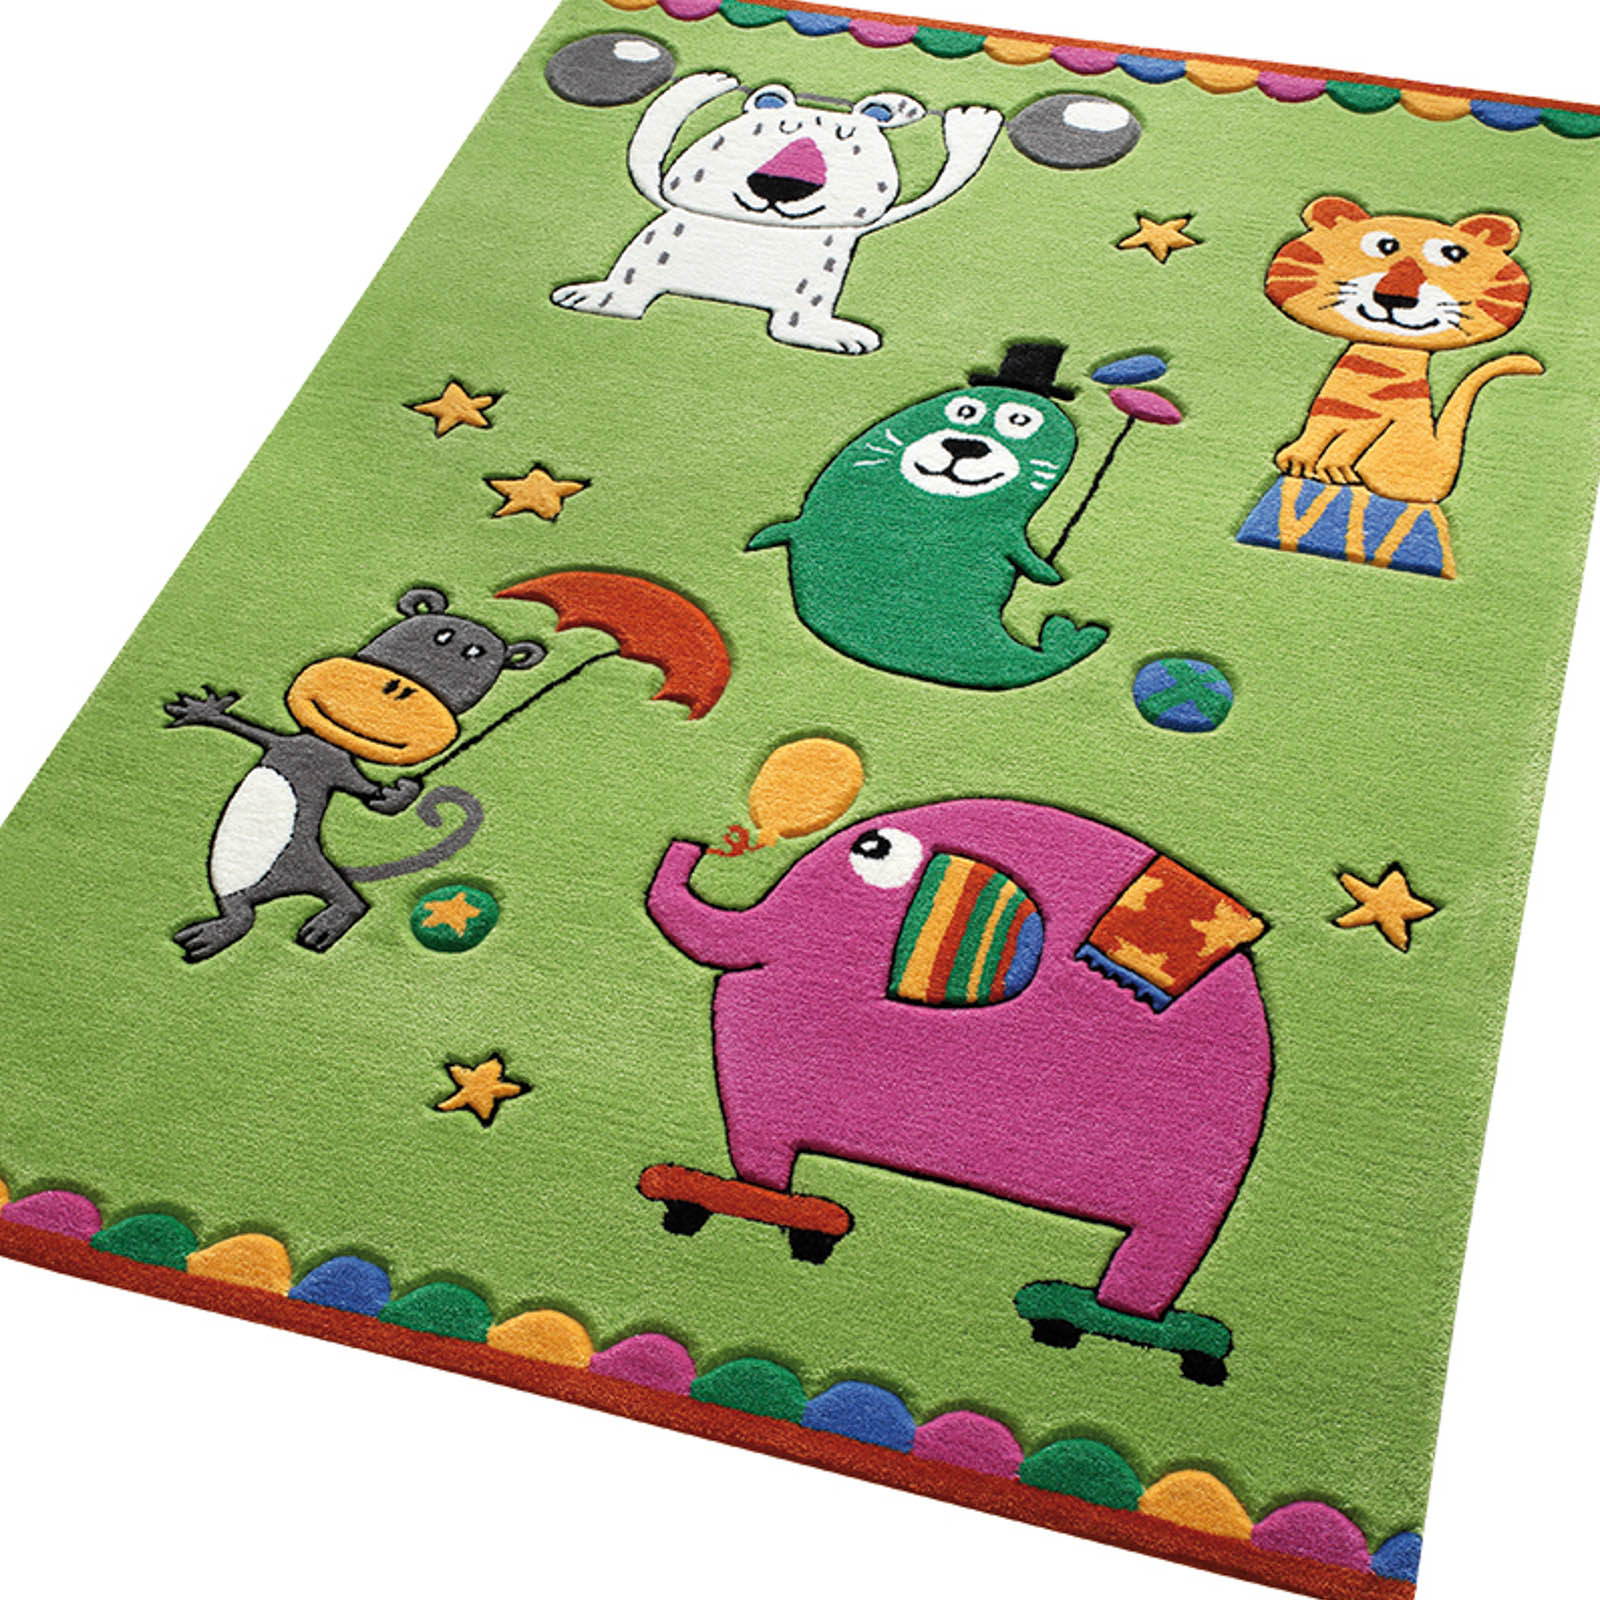 Little Artists Rugs 3981 03 in Green